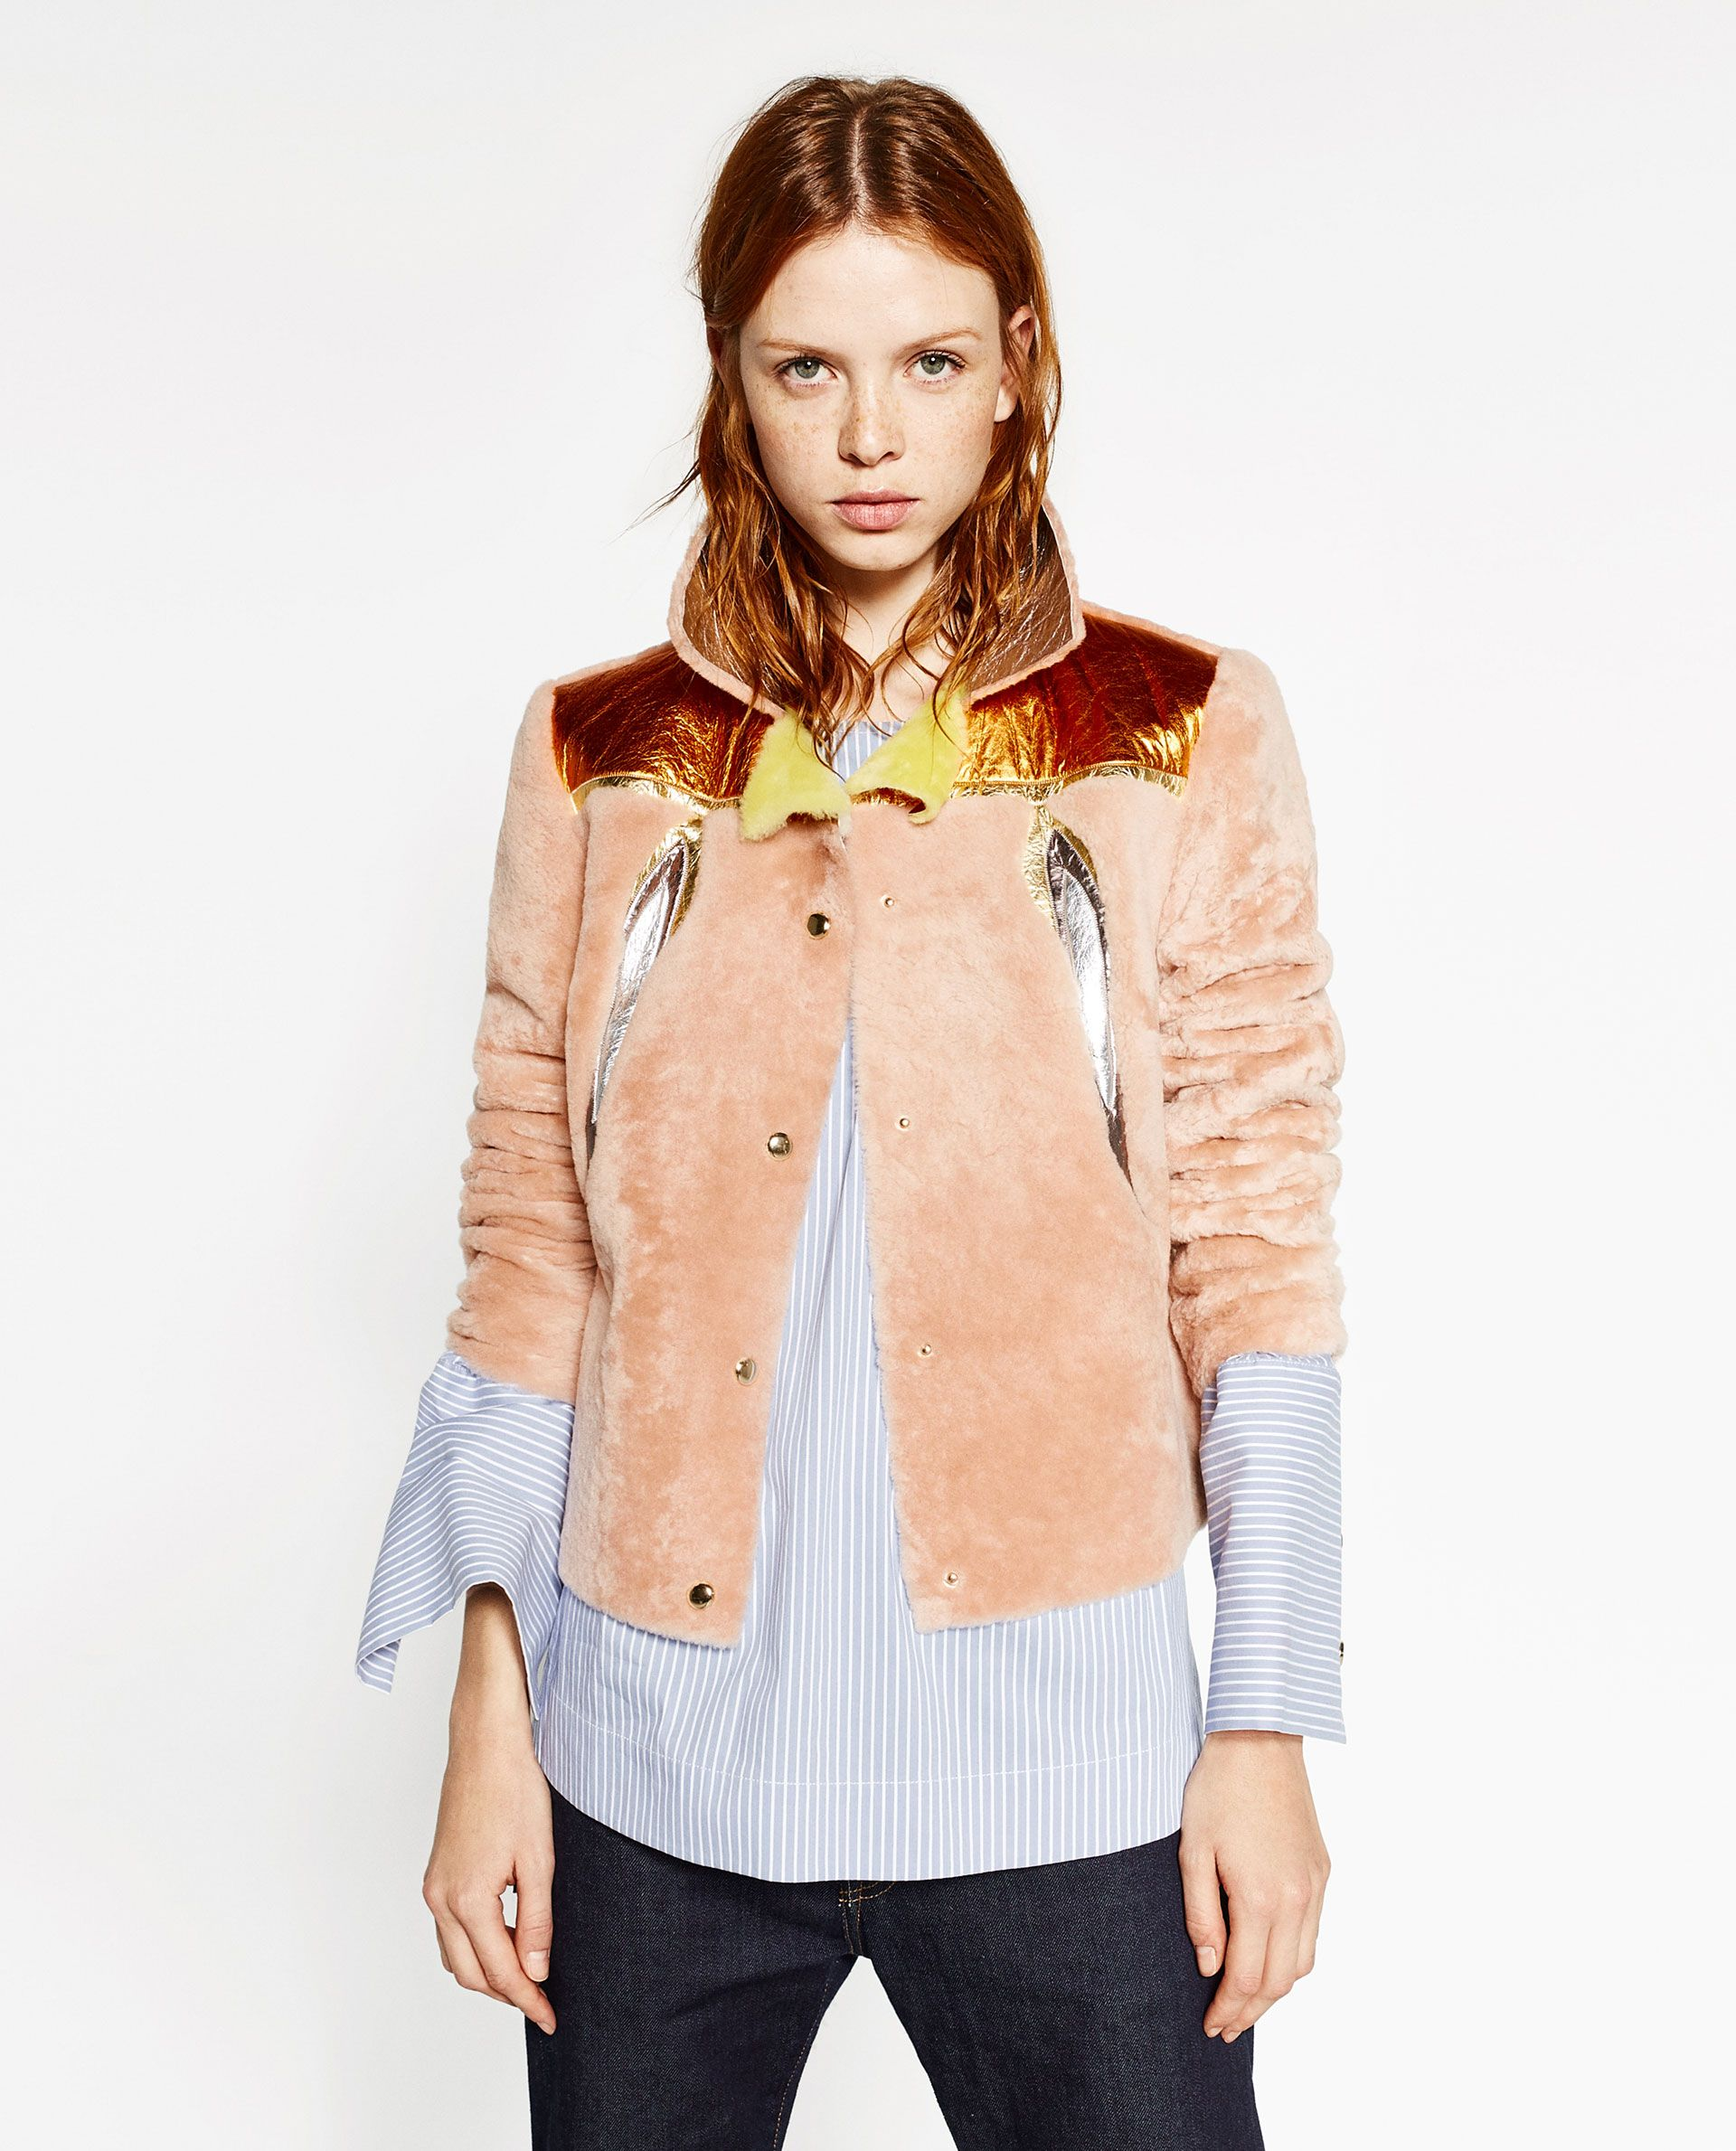 REVERSIBLE LEATHER JACKET Zara leather jacket, Jackets, Zara